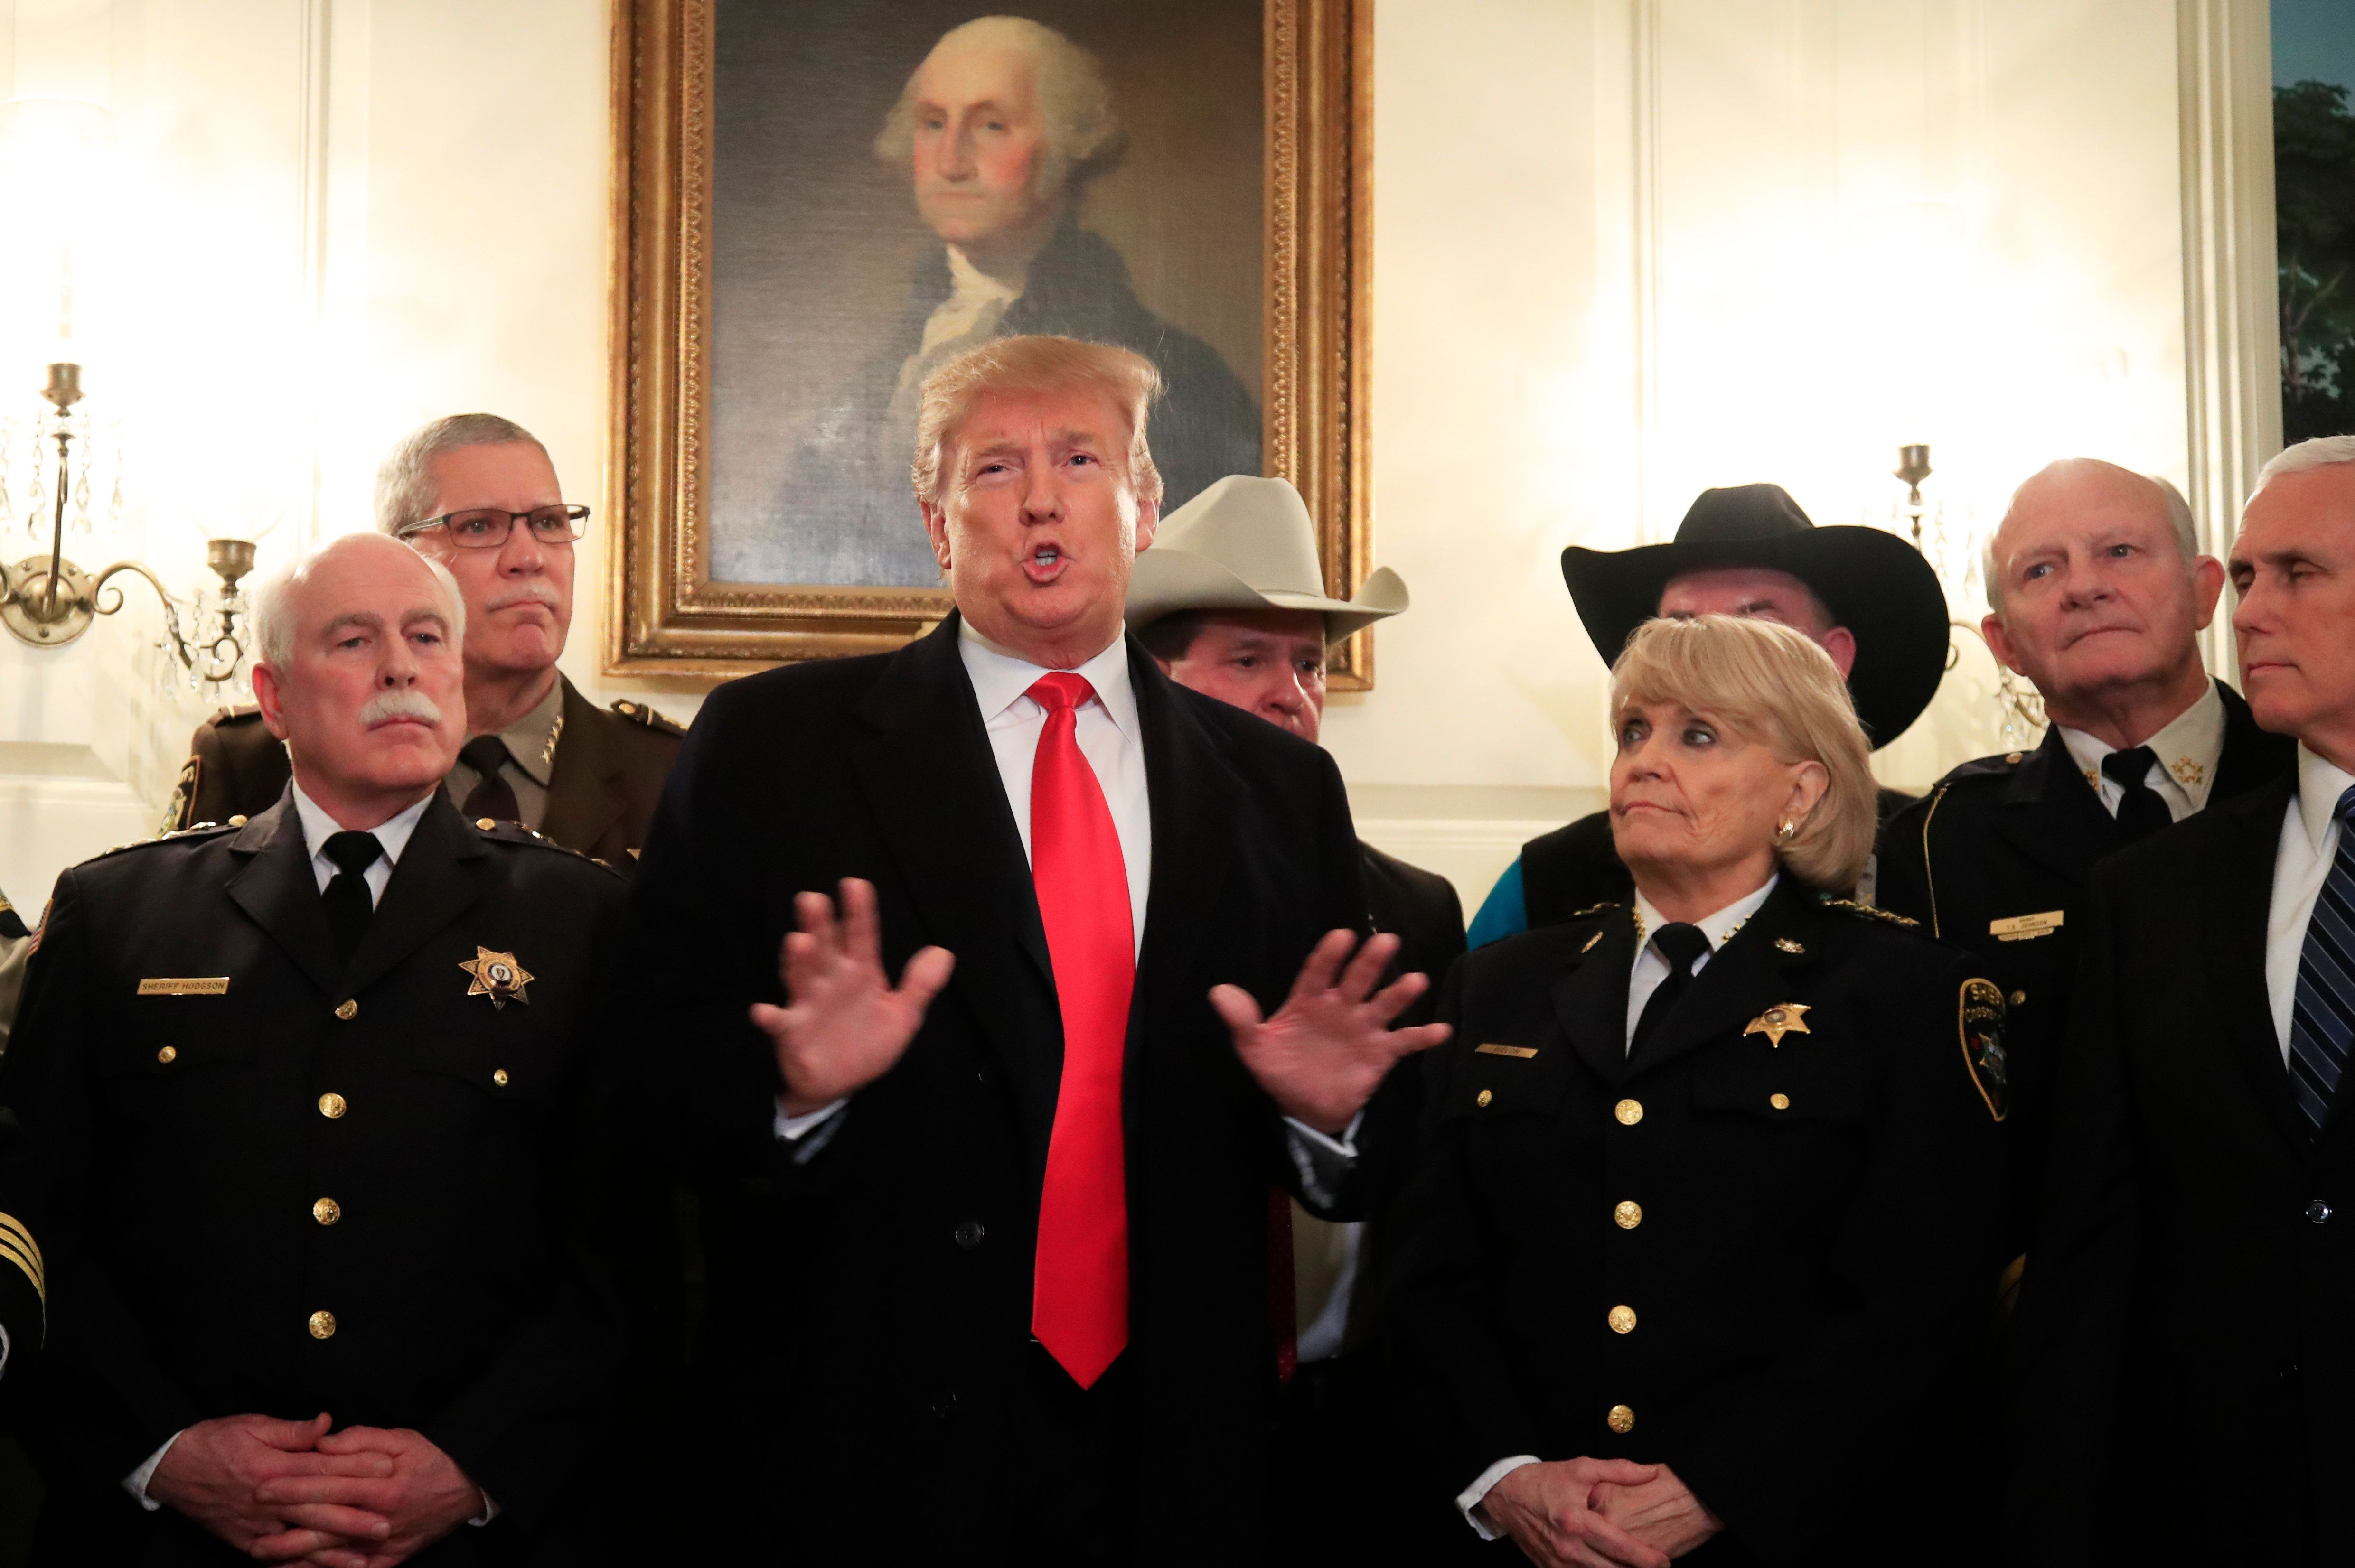 President Donald Trump met with a group of sheriffs from around the country before traveling to El Paso, Texas for a campaign